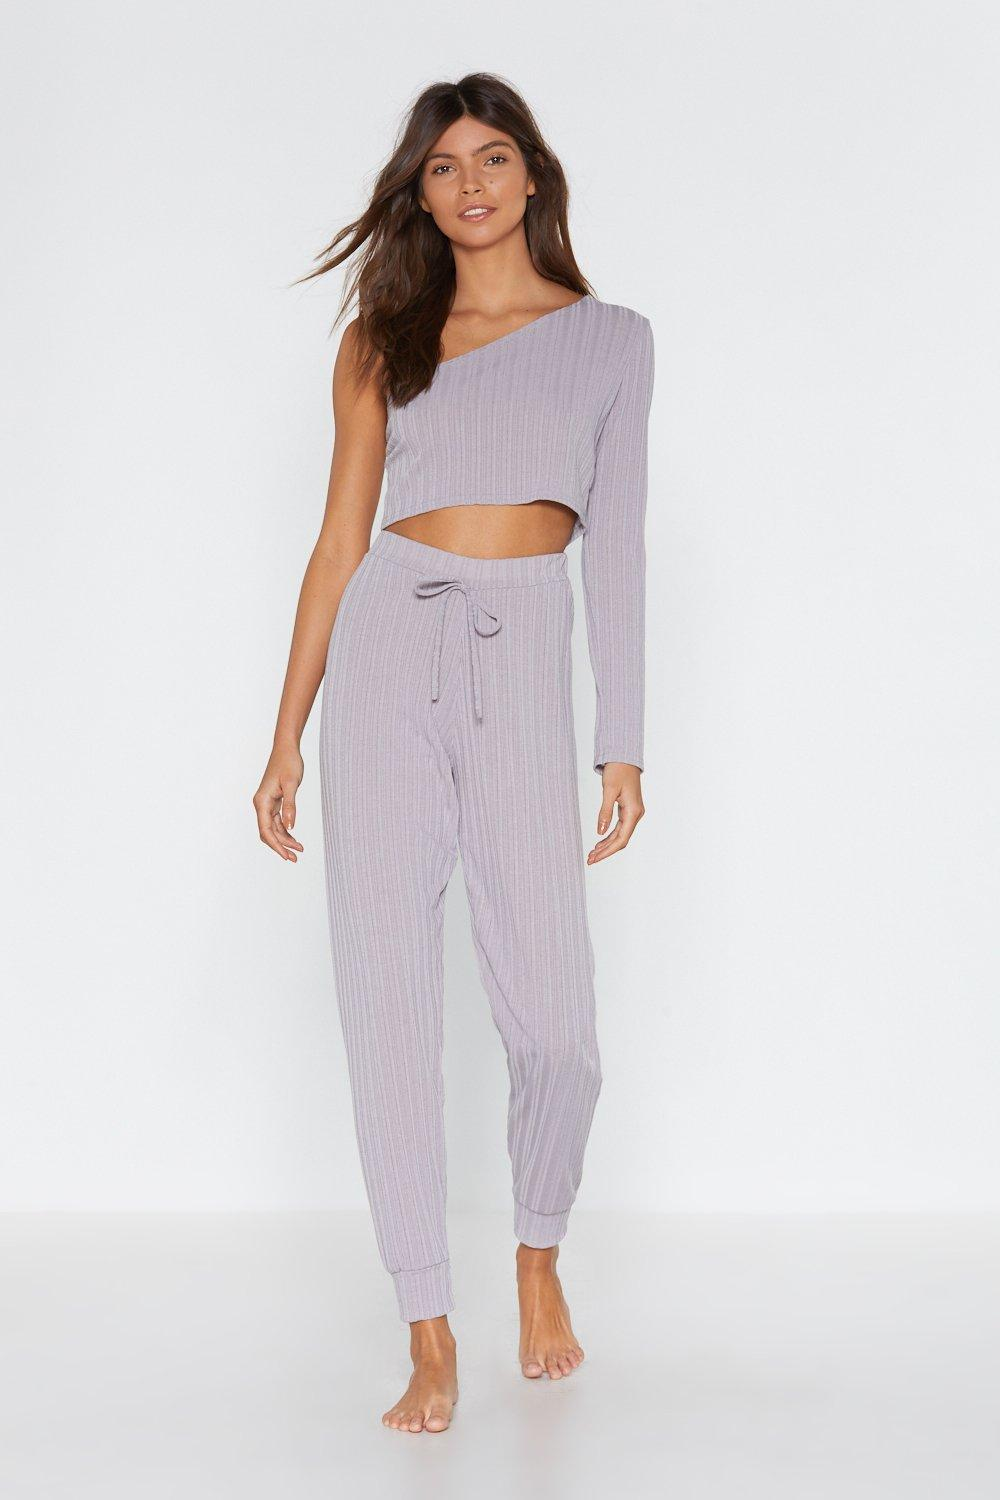 9786b2fce786e Womens Light grey Jogging the Limelight One Shouler Top and Jogger Lounge  Set